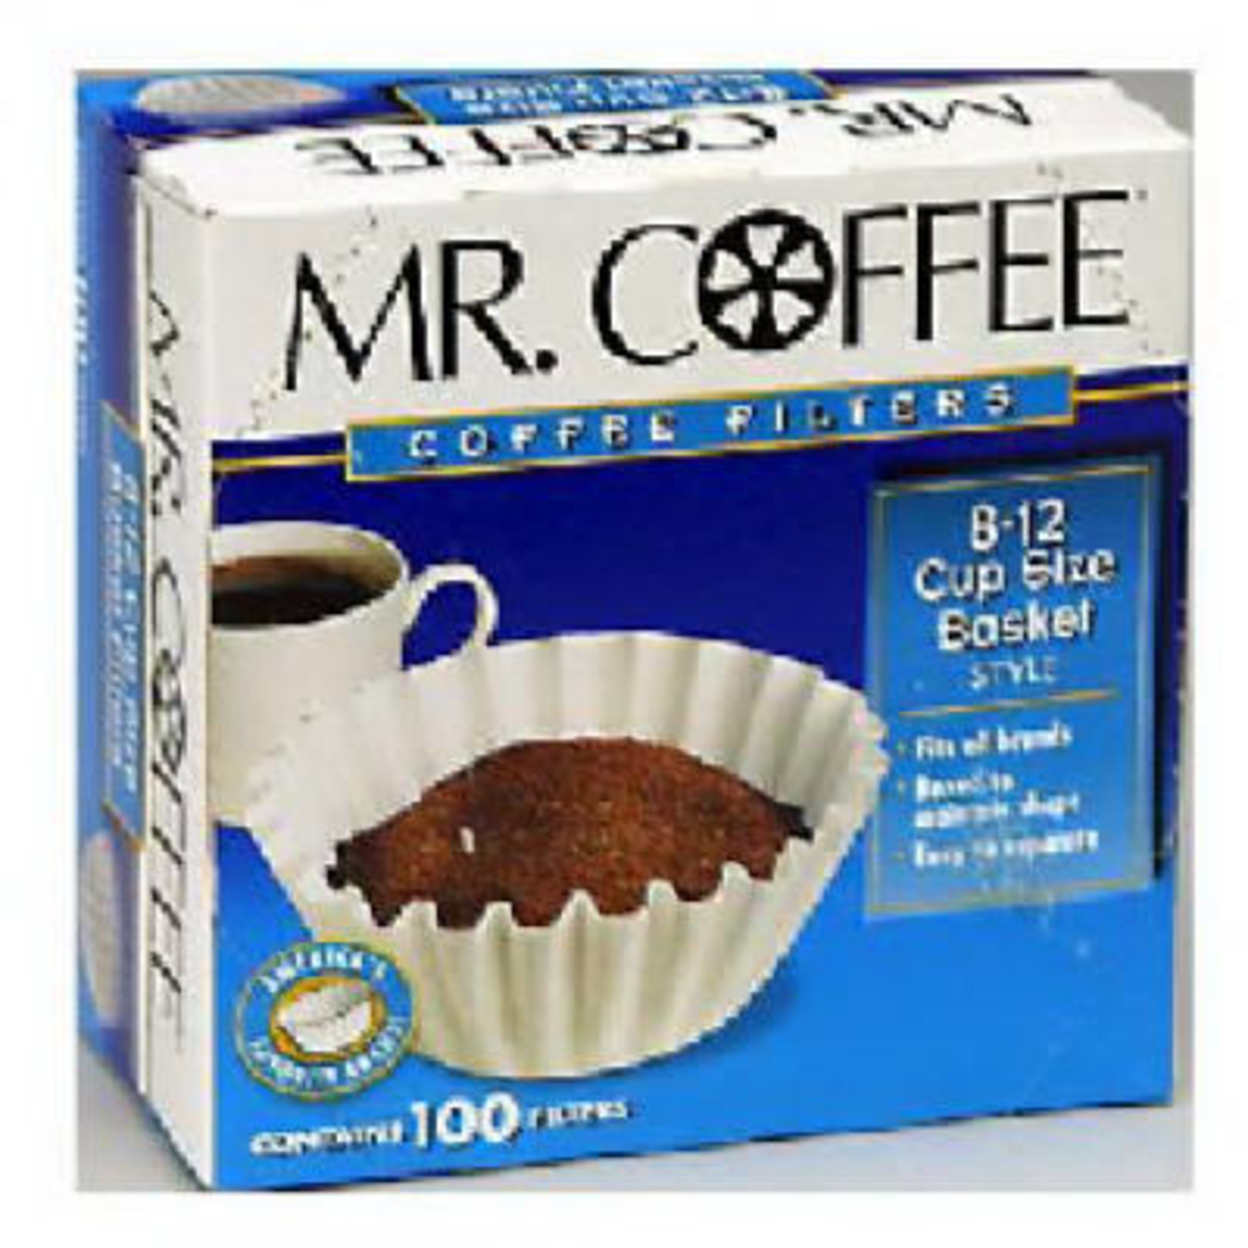 Mr. Coffee Uf500Pb Basket Filter 8-12 Cups - 500 Pack 5a3c83272a00e46acd5a12d5